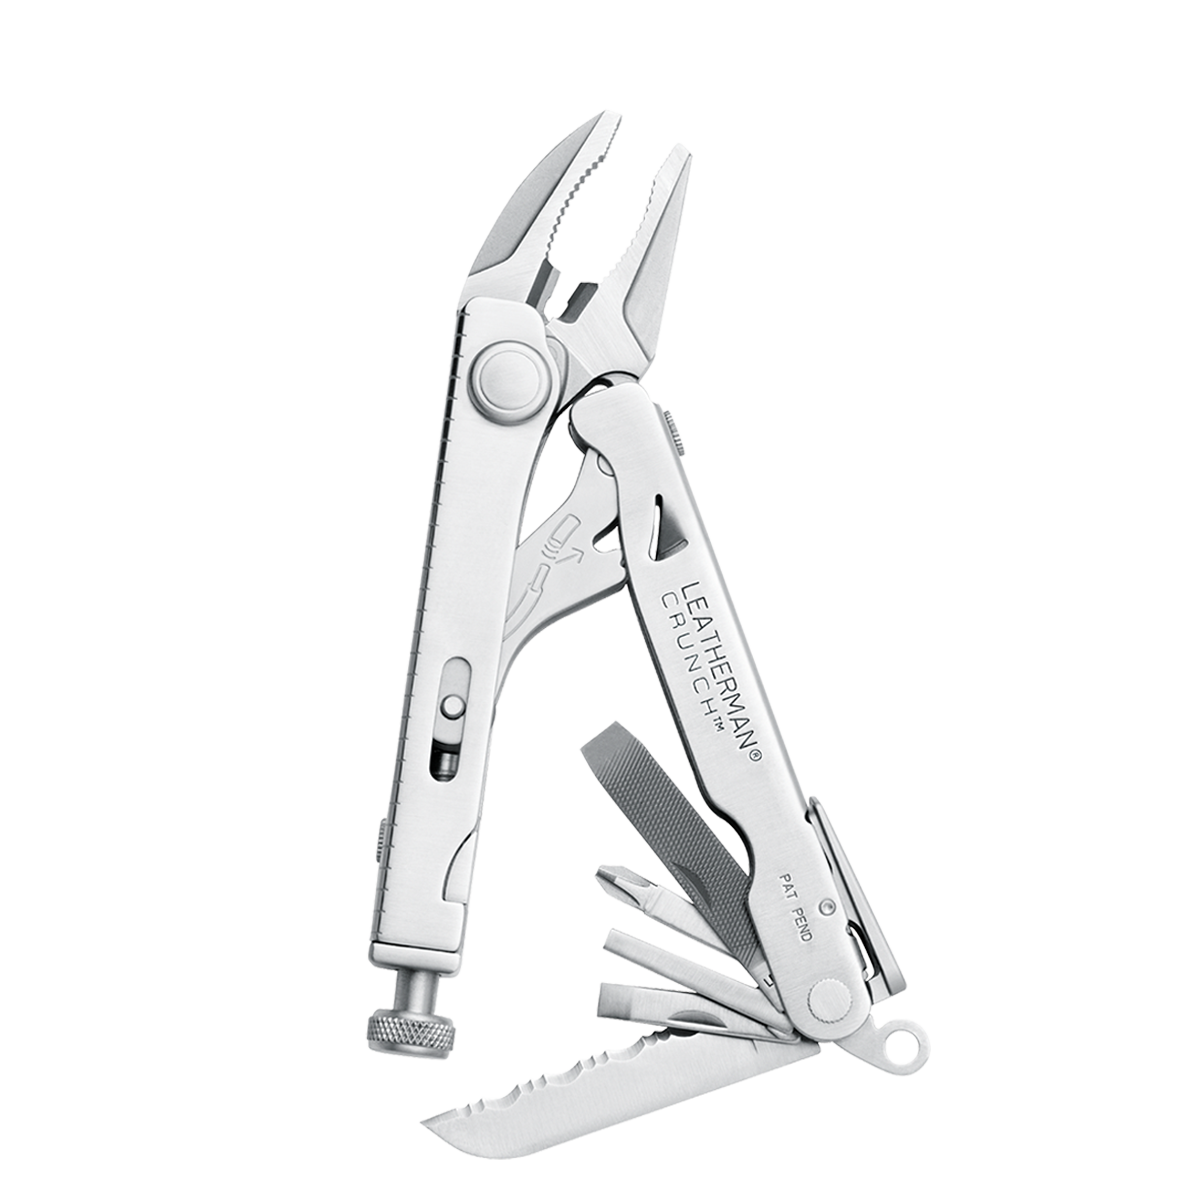 leatherman clip crunch